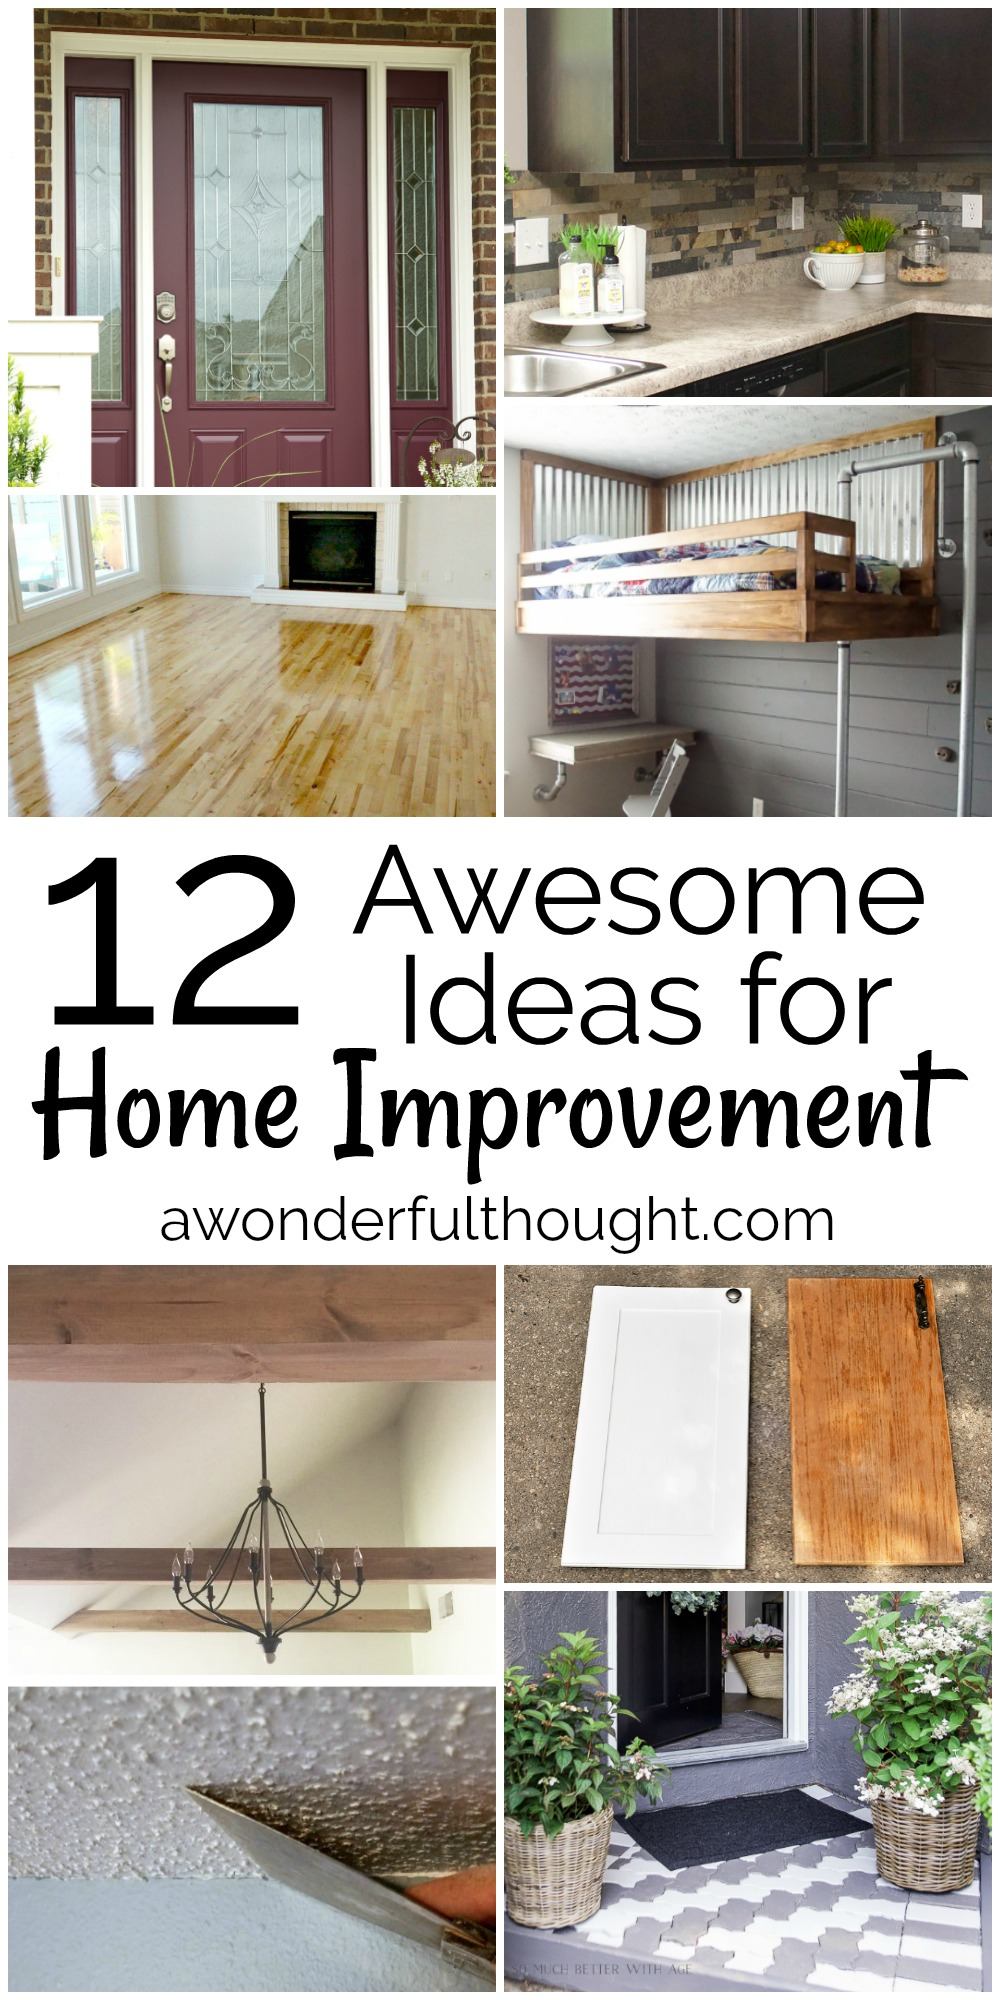 12 awesome home improvement ideas | mm #163 - a wonderful thought